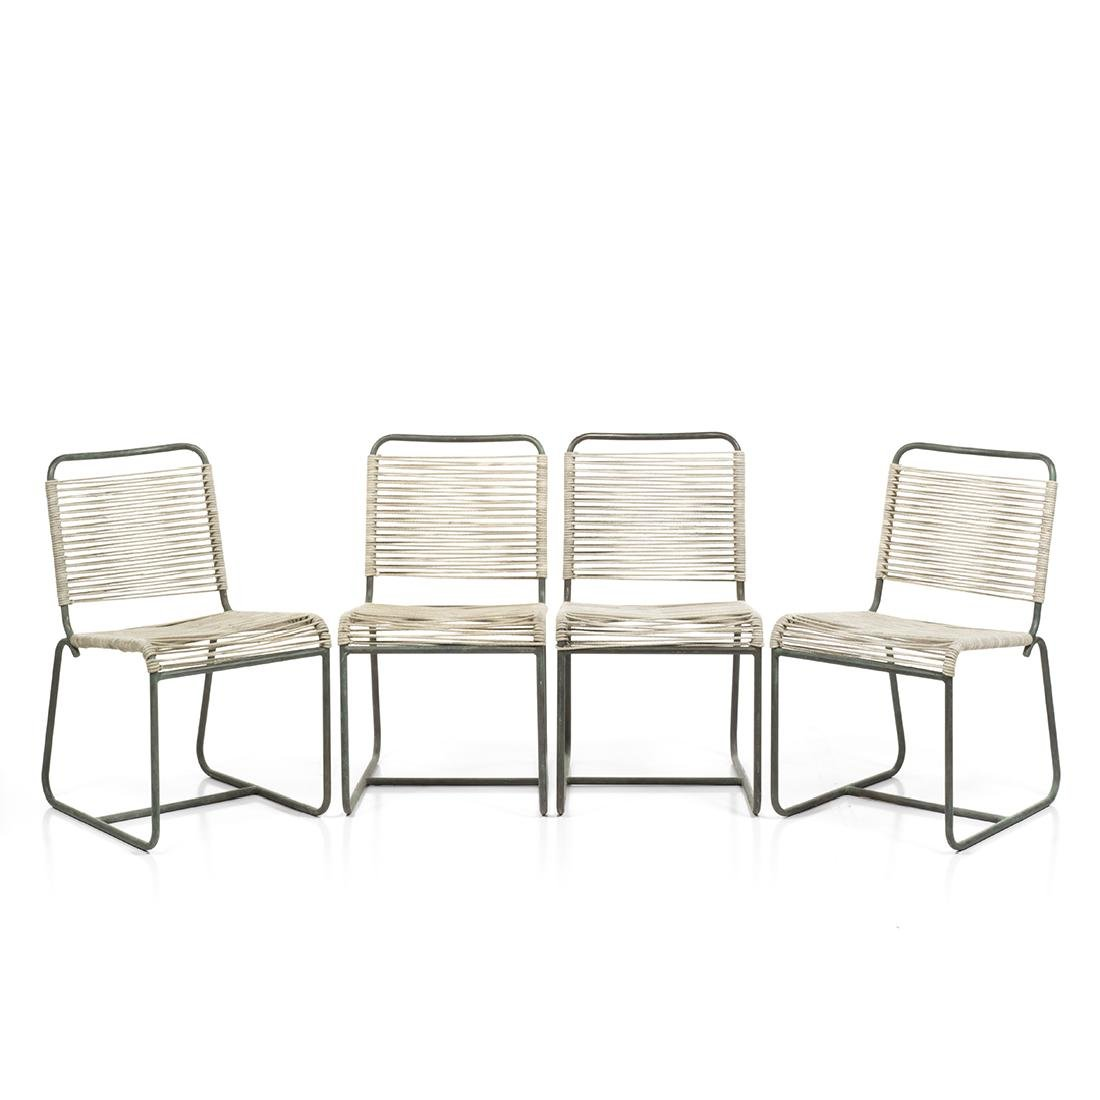 Walter Lamb Dining Chairs (4)